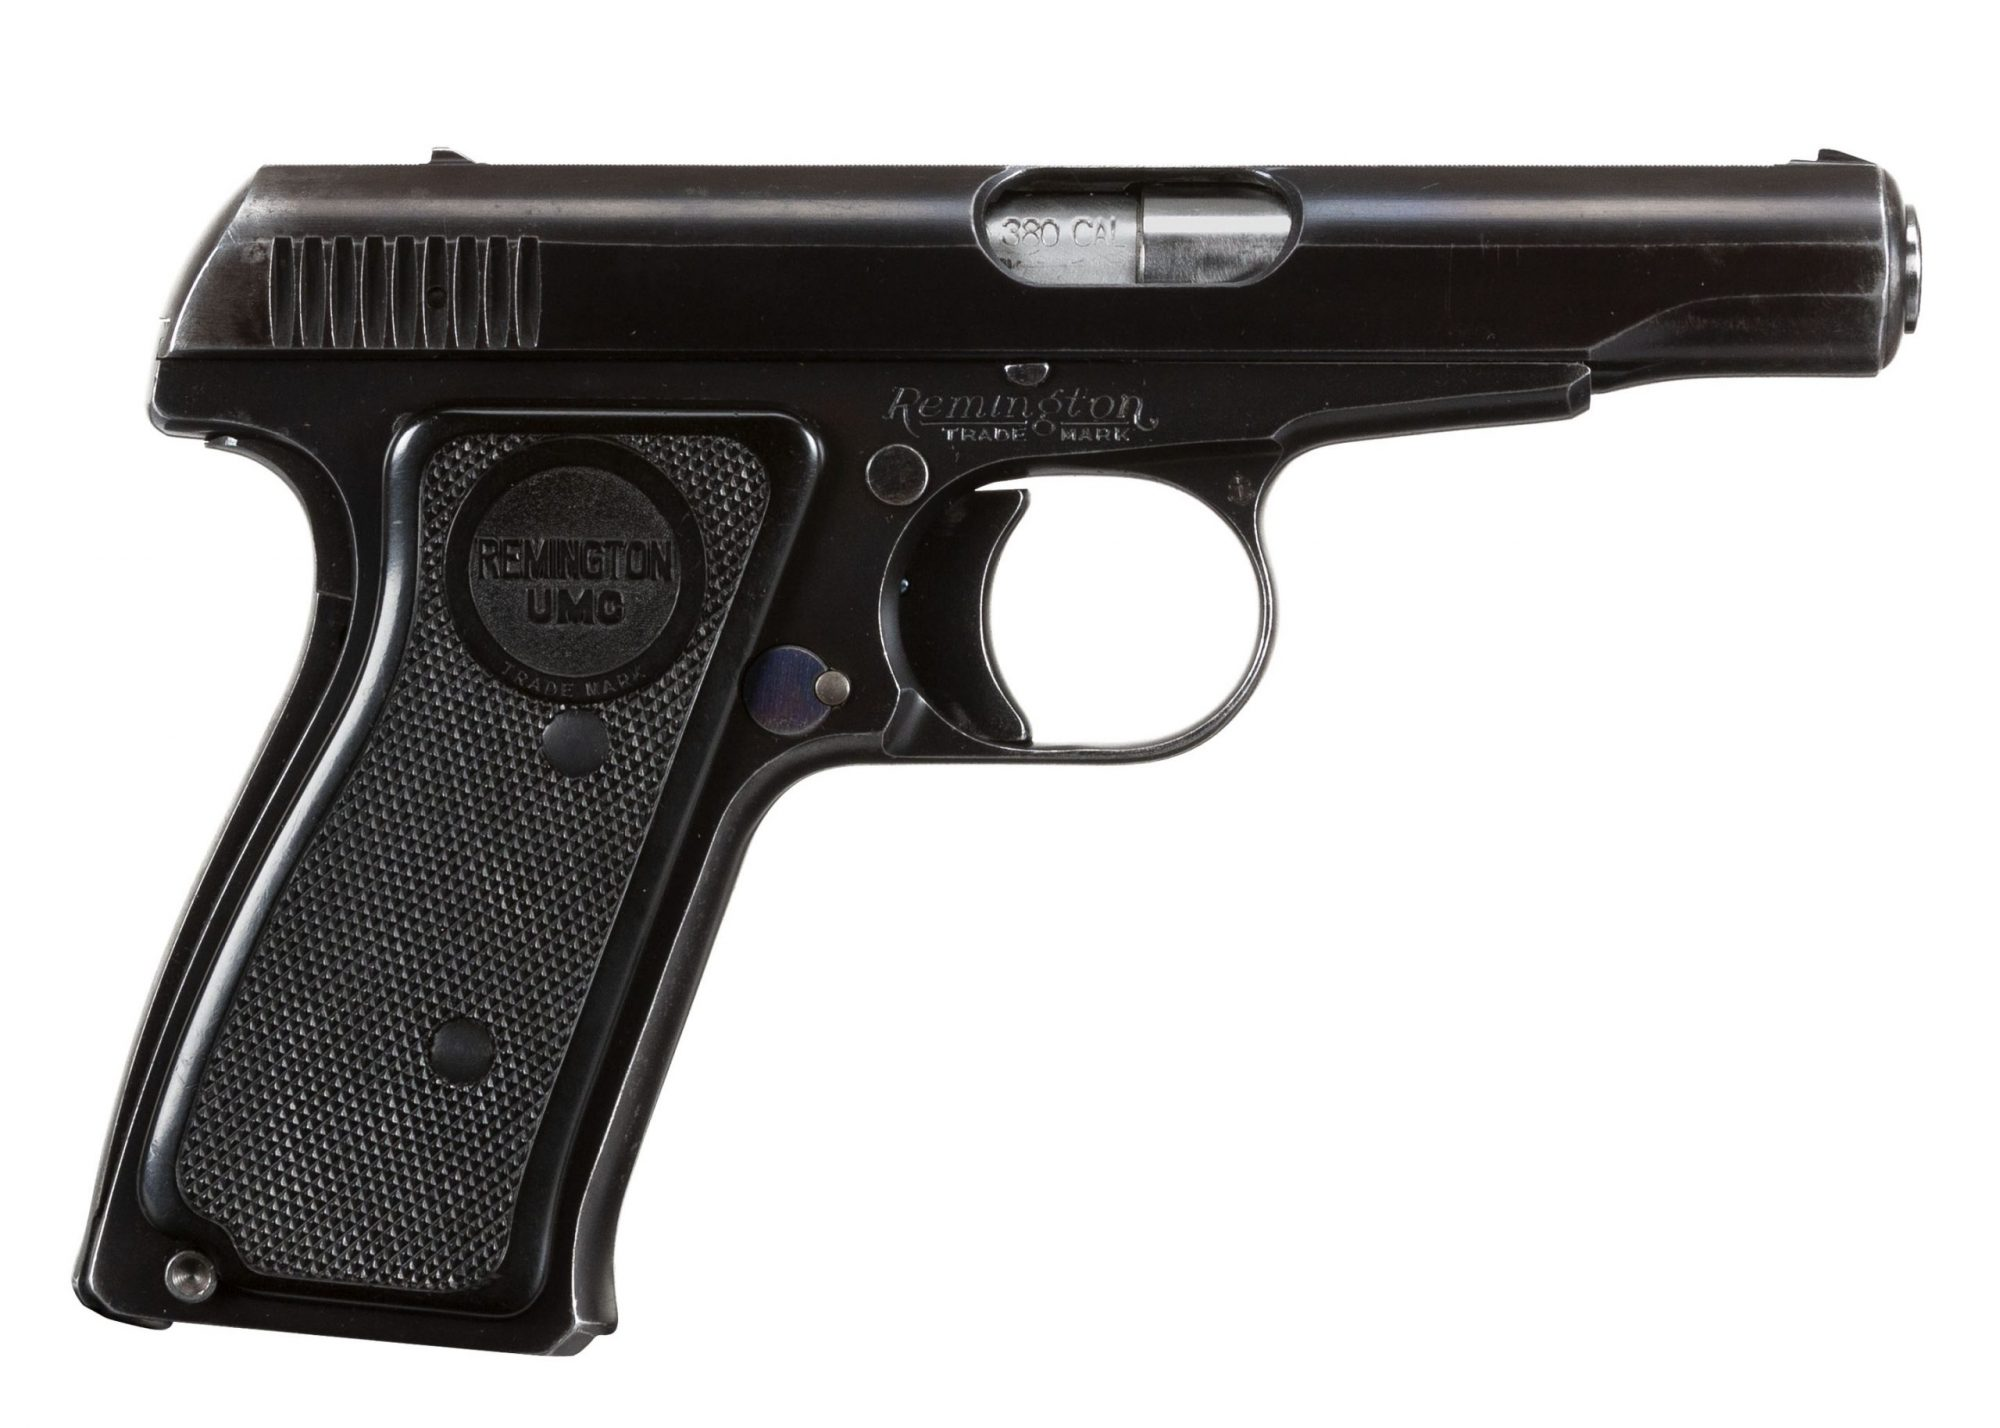 Photo of a Remington Model 51 UMC in .380 ACP, for sale by Turnbull Restoration of Bloomfield, NY